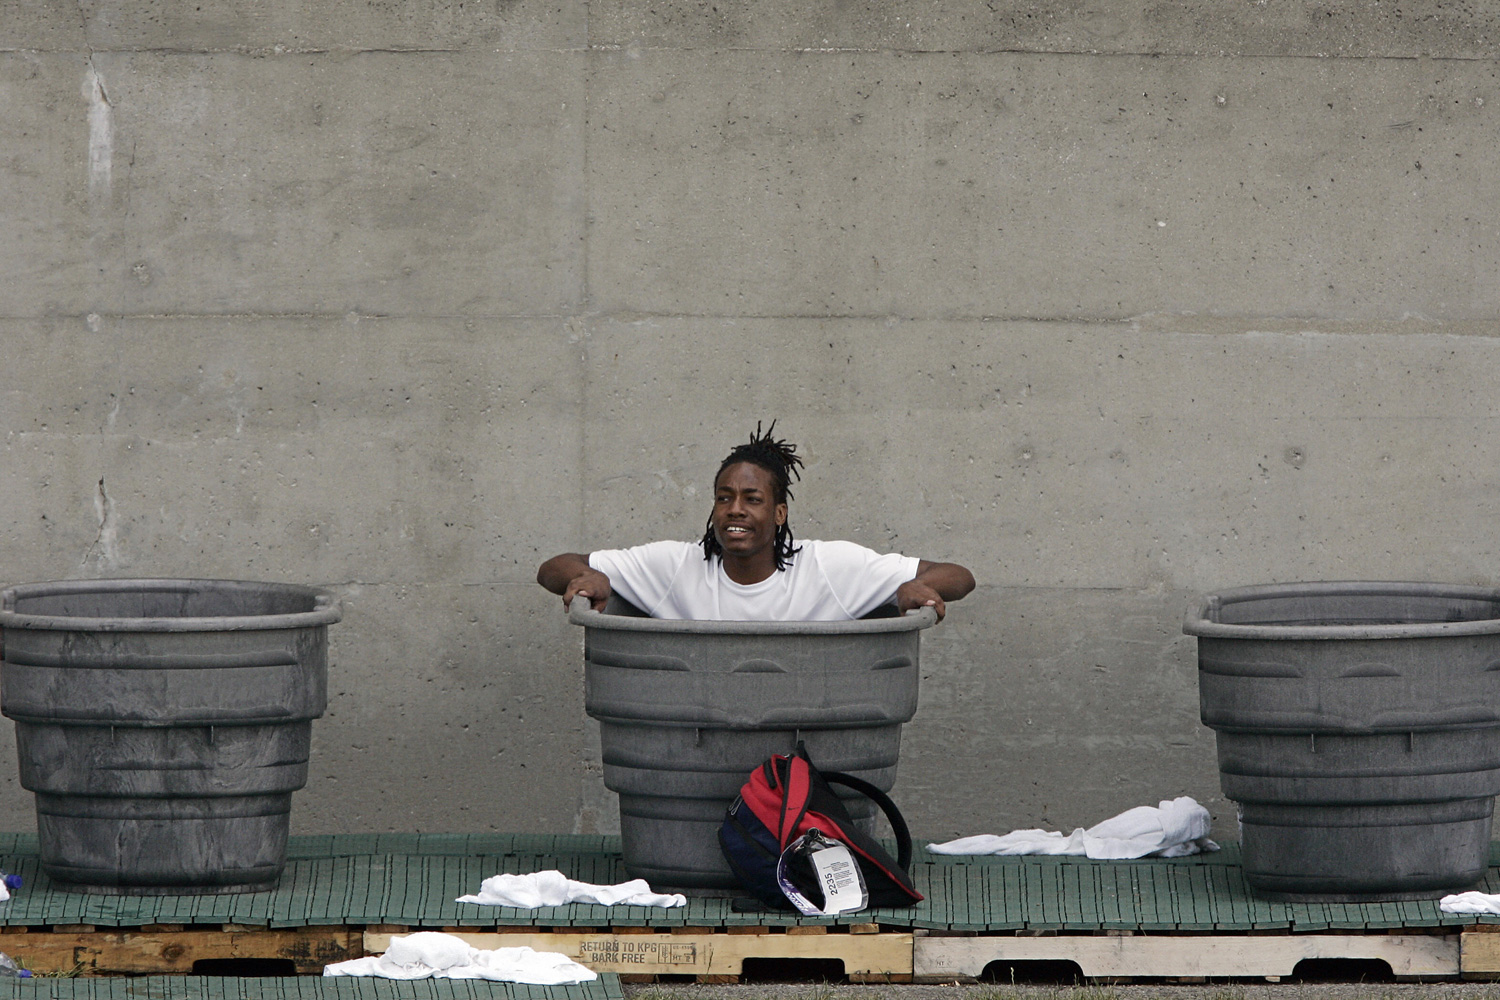 An athlete cools down in tubs full of ice during the 2007 AT&T US Outdoor Track and Field Championships at Mike Carroll Stadium in Indianapolis.